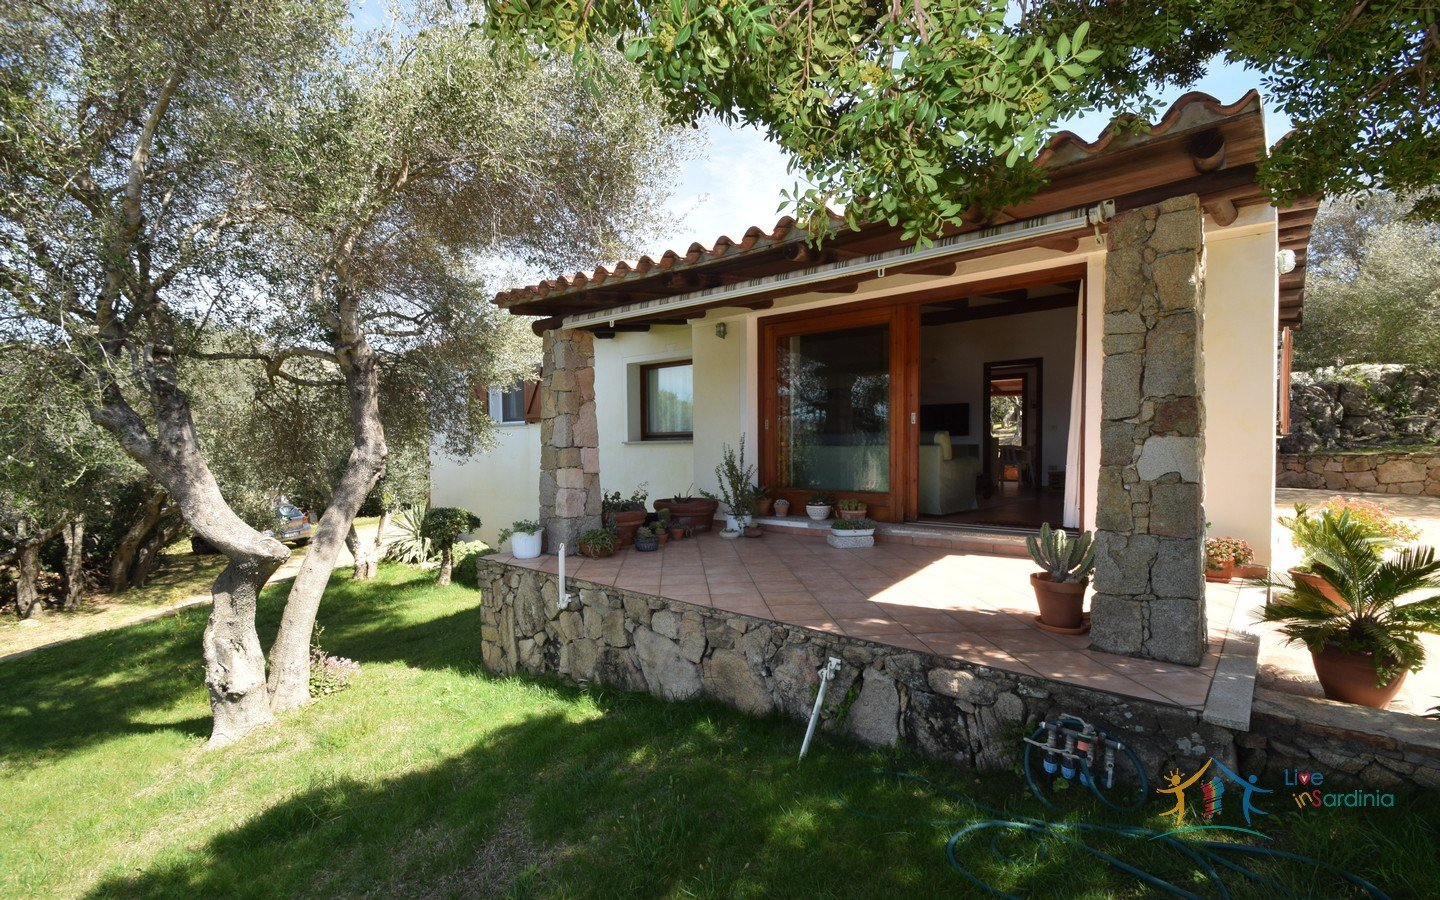 Cosy House For Sale In Porto Rotondo, 10 Km From Olbia, North Sardinia